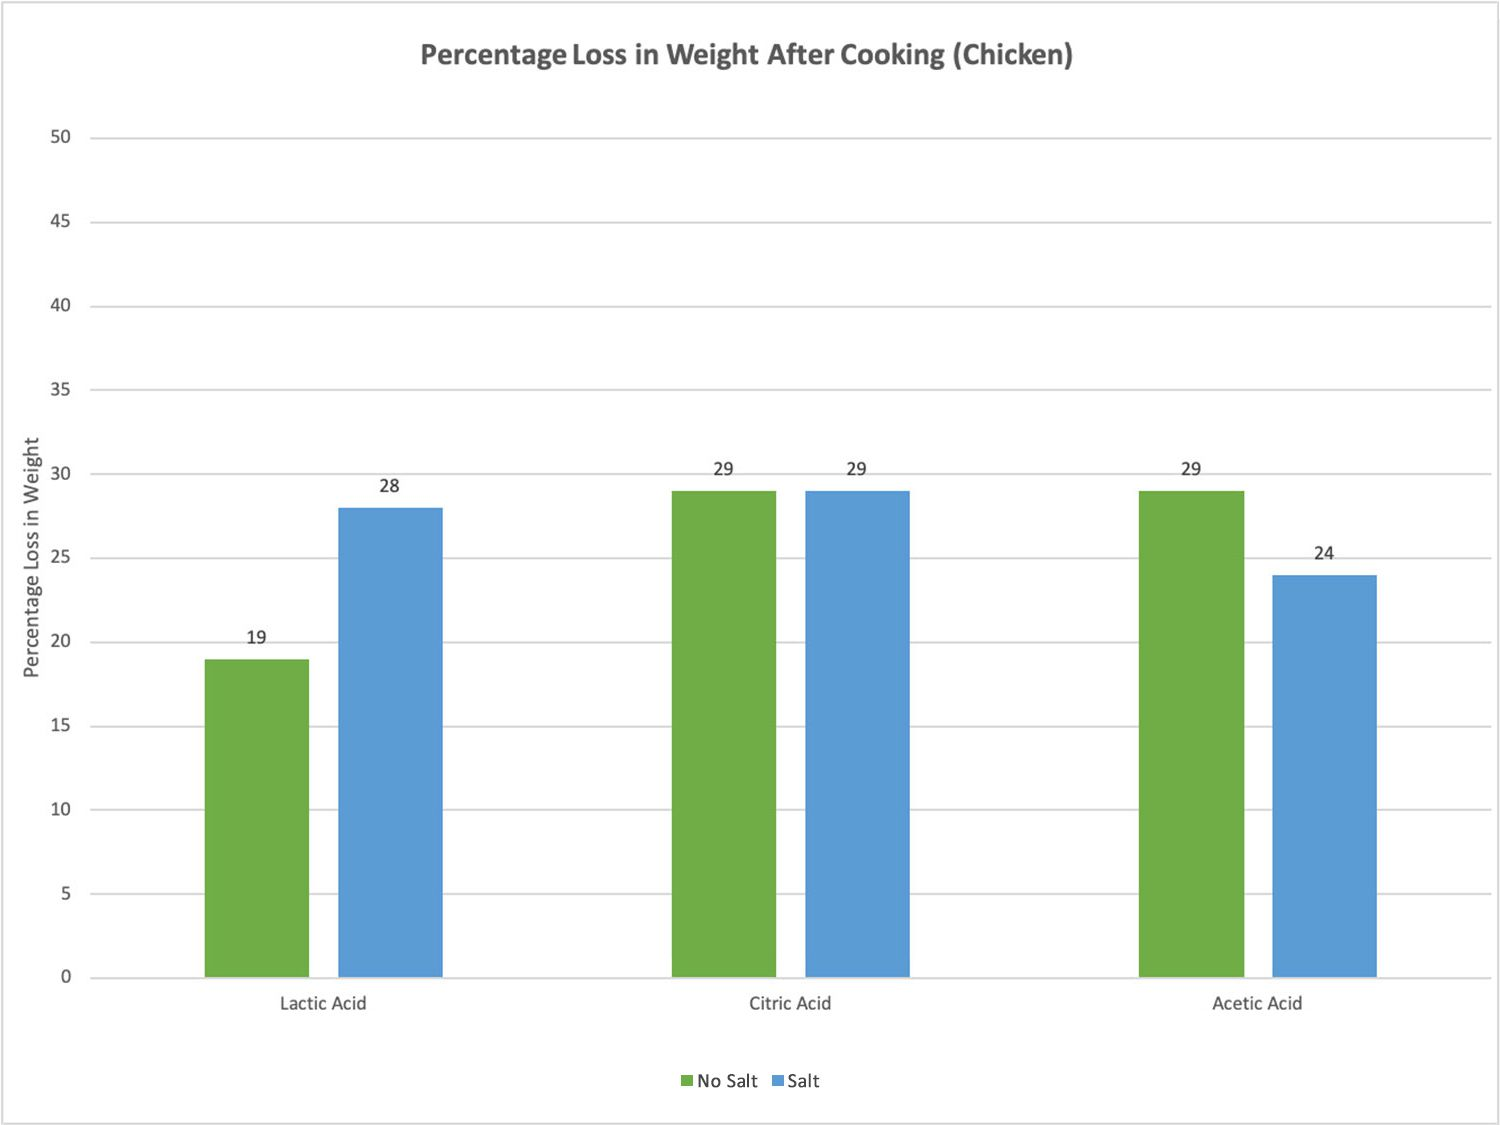 Graph showing percentage loss in weight of marinated chicken after cooking